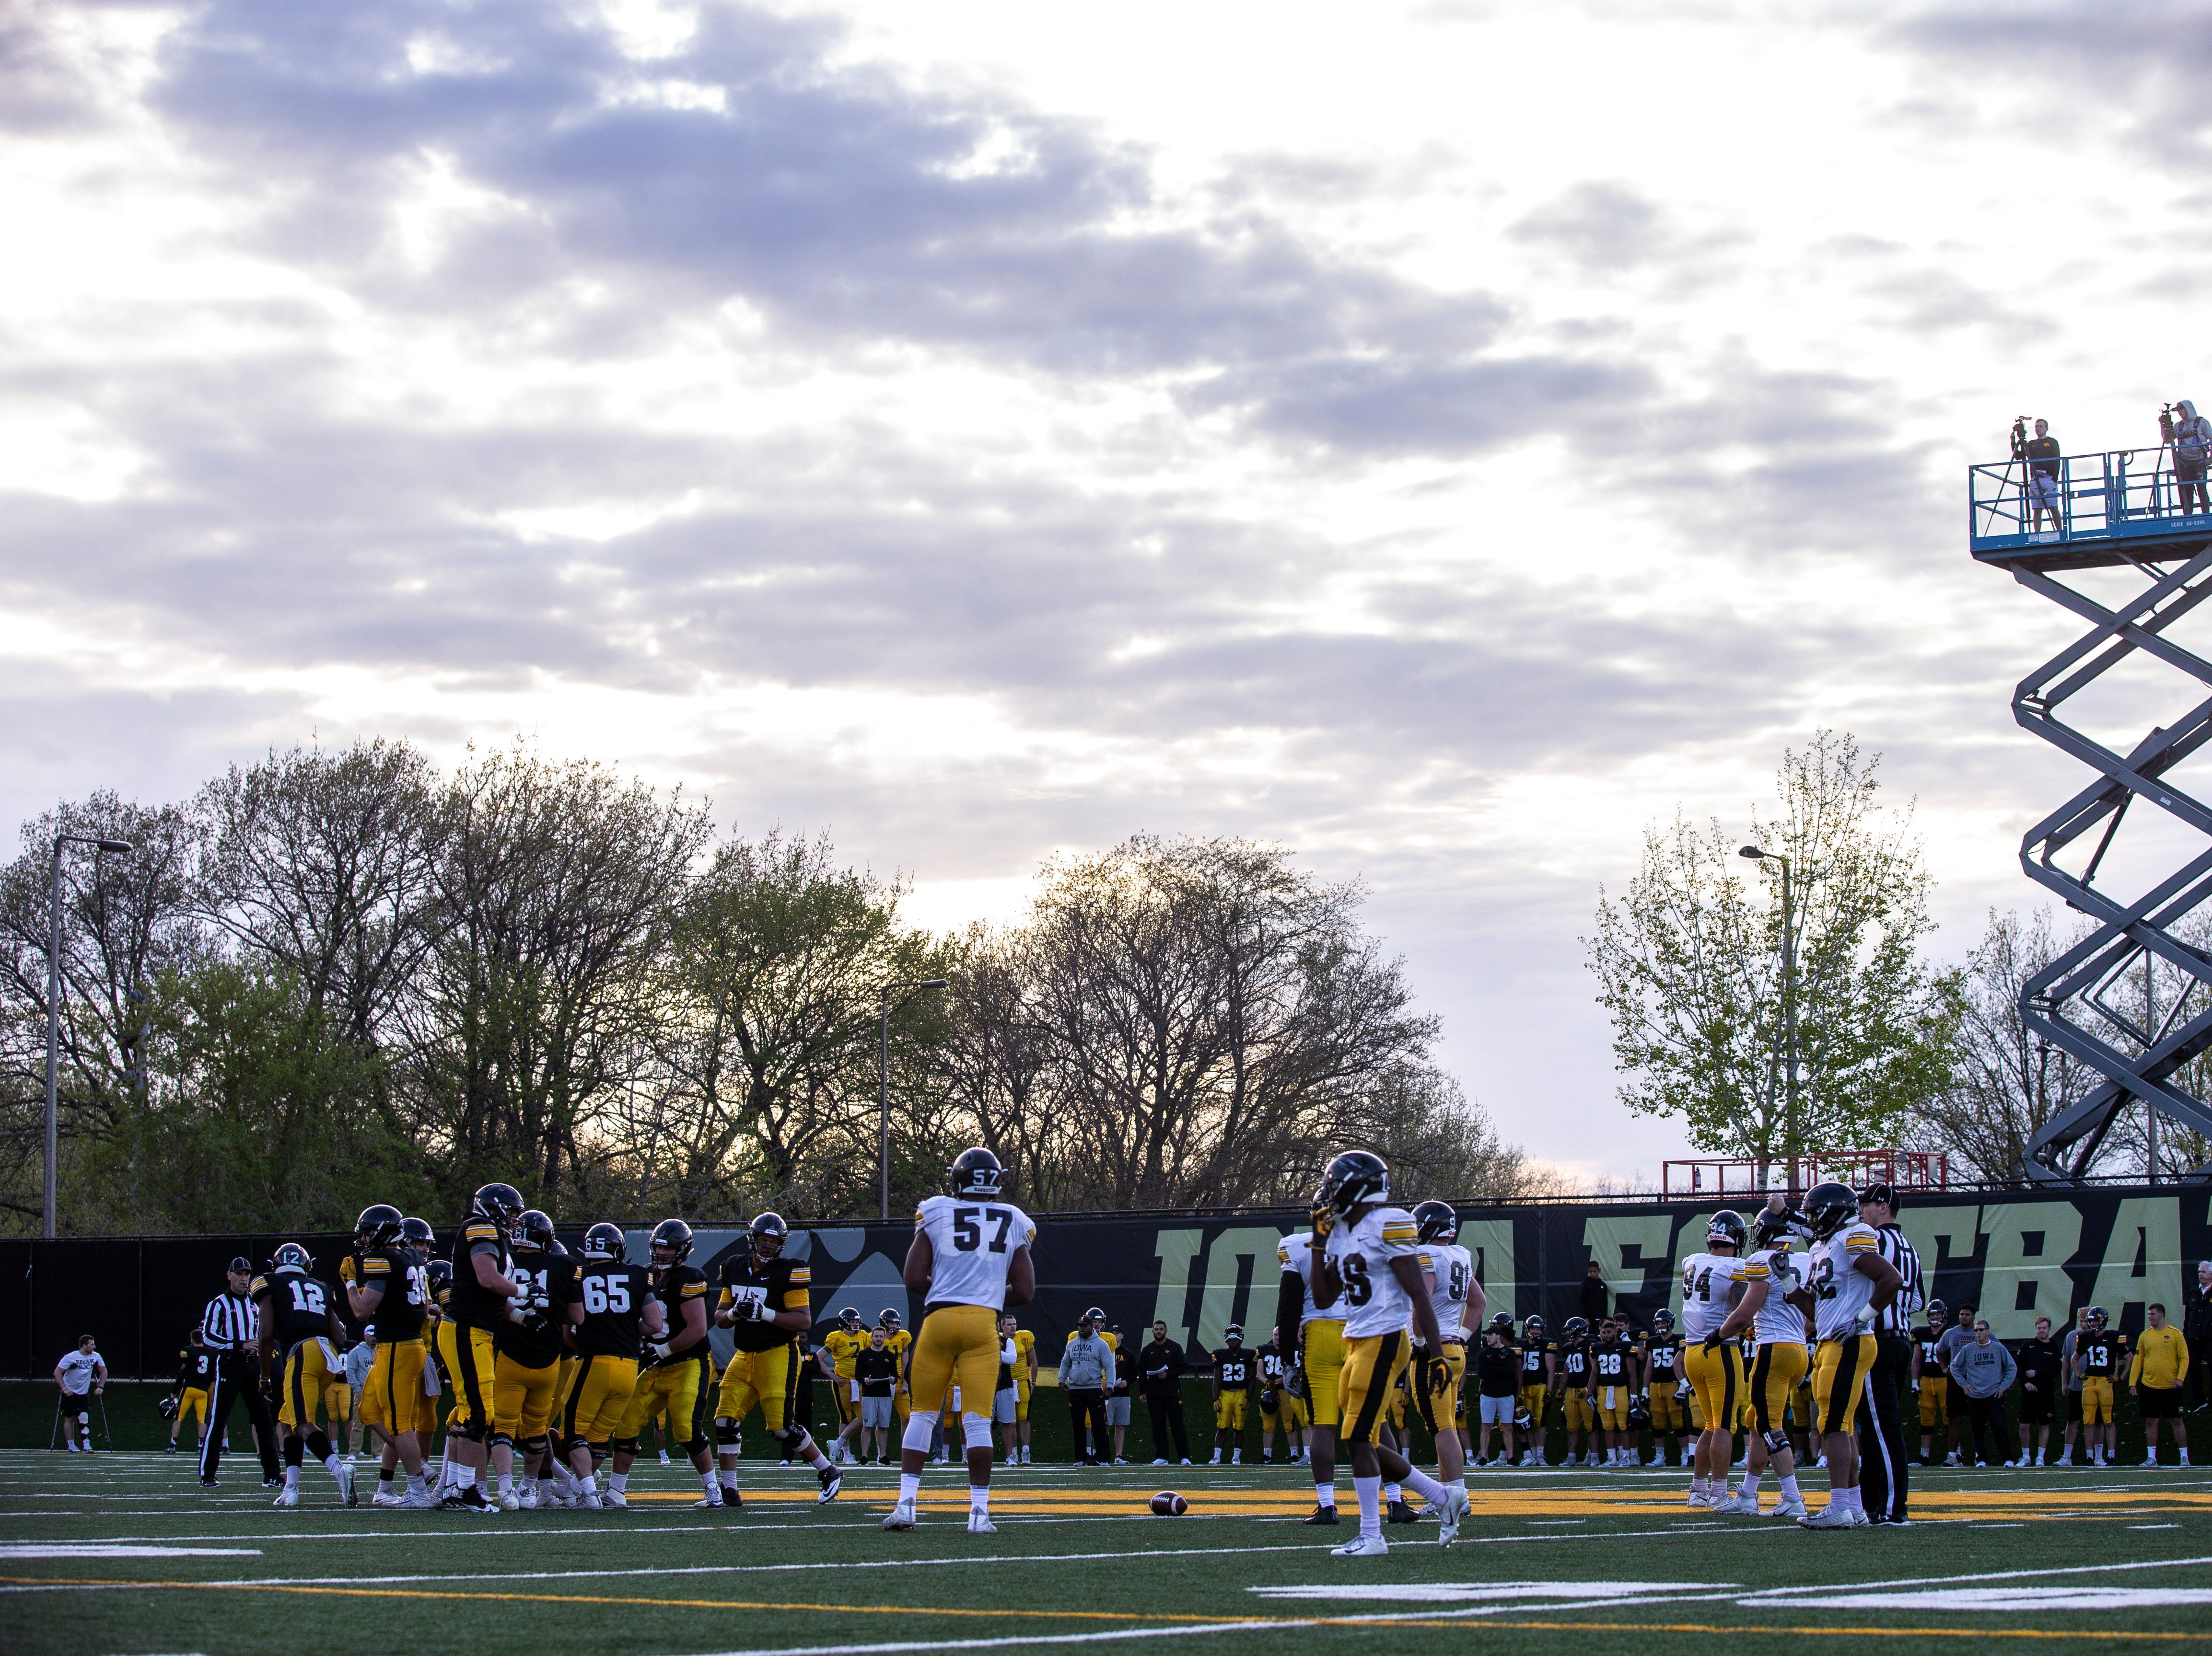 Iowa Hawkeyes line up as the sun beings to set during the final spring football practice, Friday, April 26, 2019, at the University of Iowa outdoor practice facility in Iowa City, Iowa.